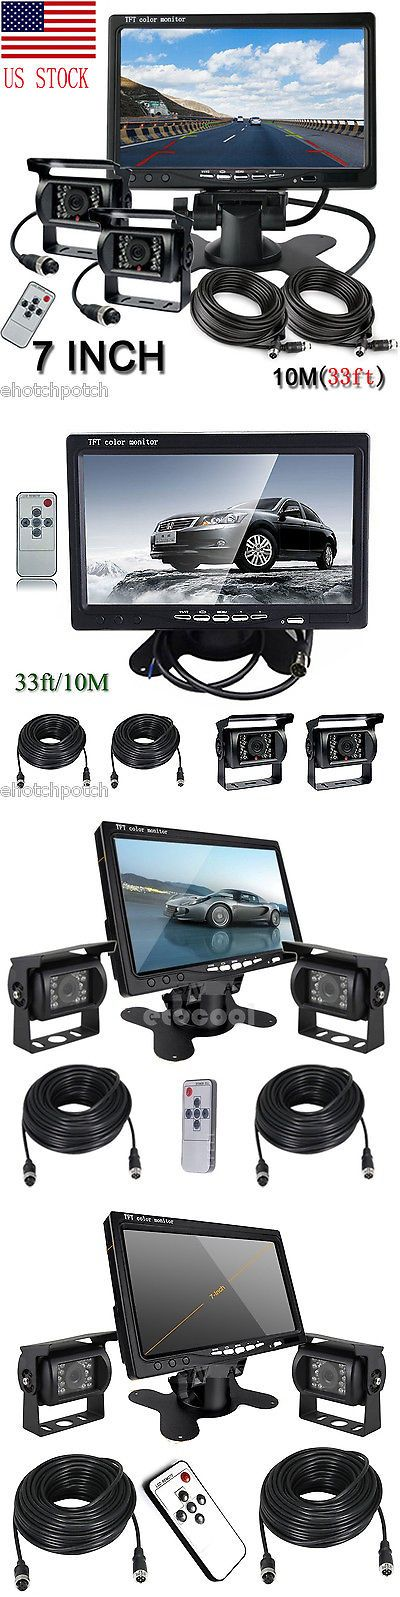 Rear View Monitors Cams and Kits: 2 X Wired Ir Night Vision Rear Backup Camera System + 7 Monitor For Rv Truck -> BUY IT NOW ONLY: $89.98 on eBay!